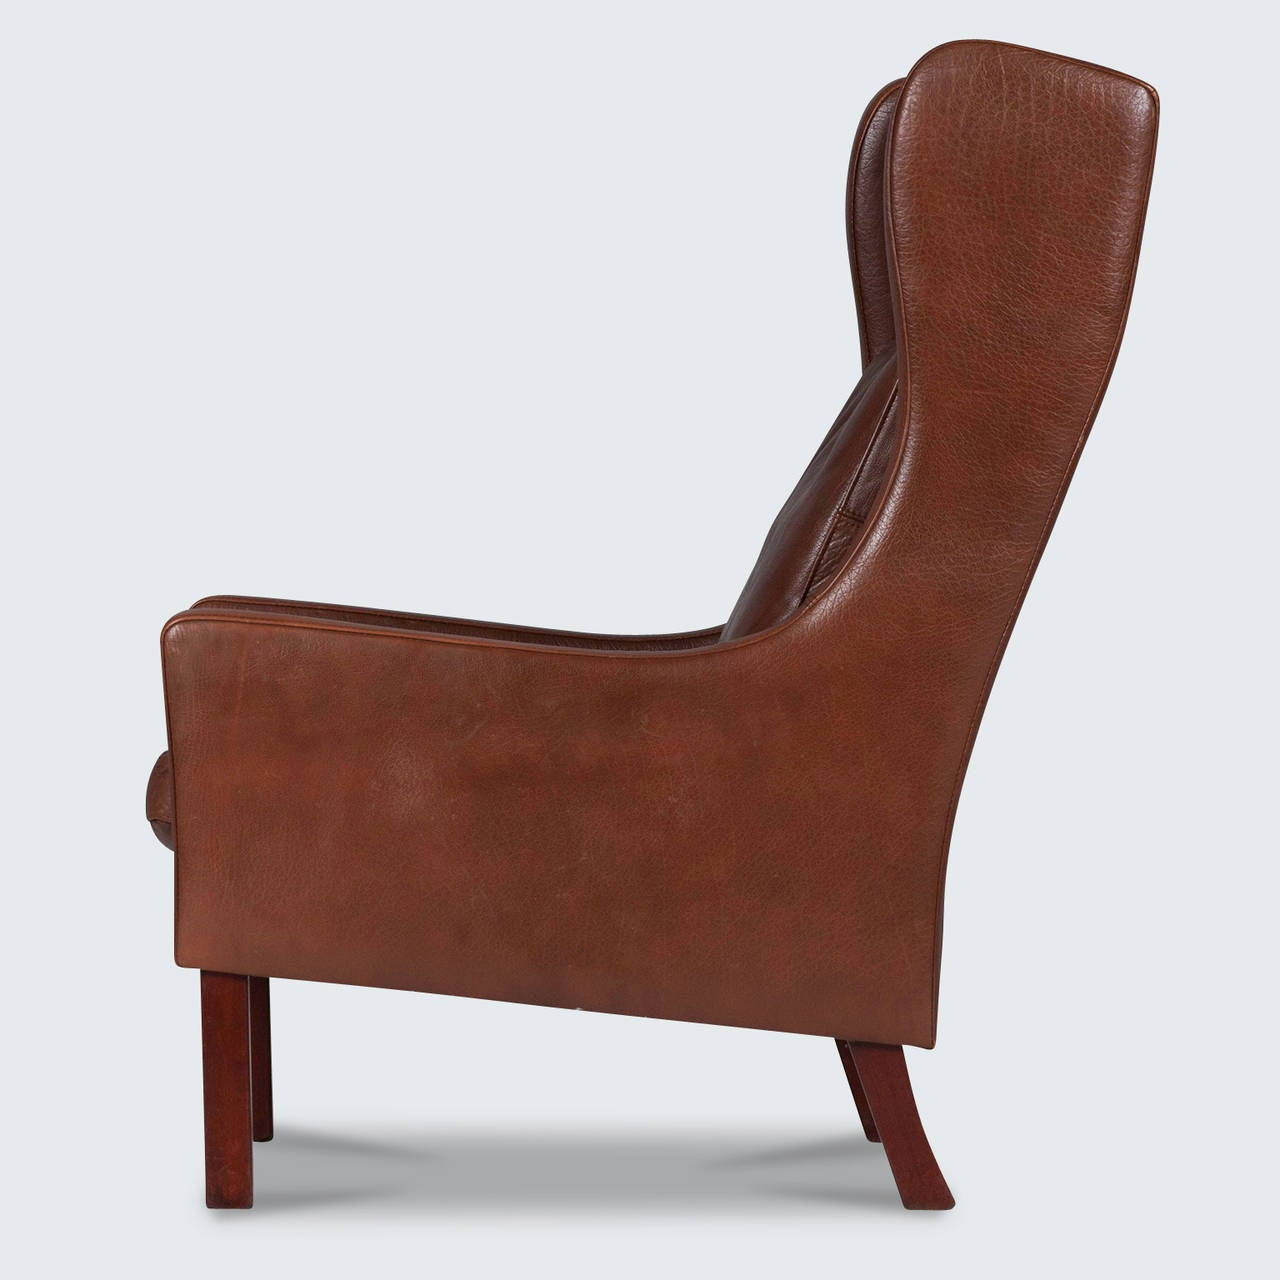 Arm Chair Side Brown Leather Chair Side View